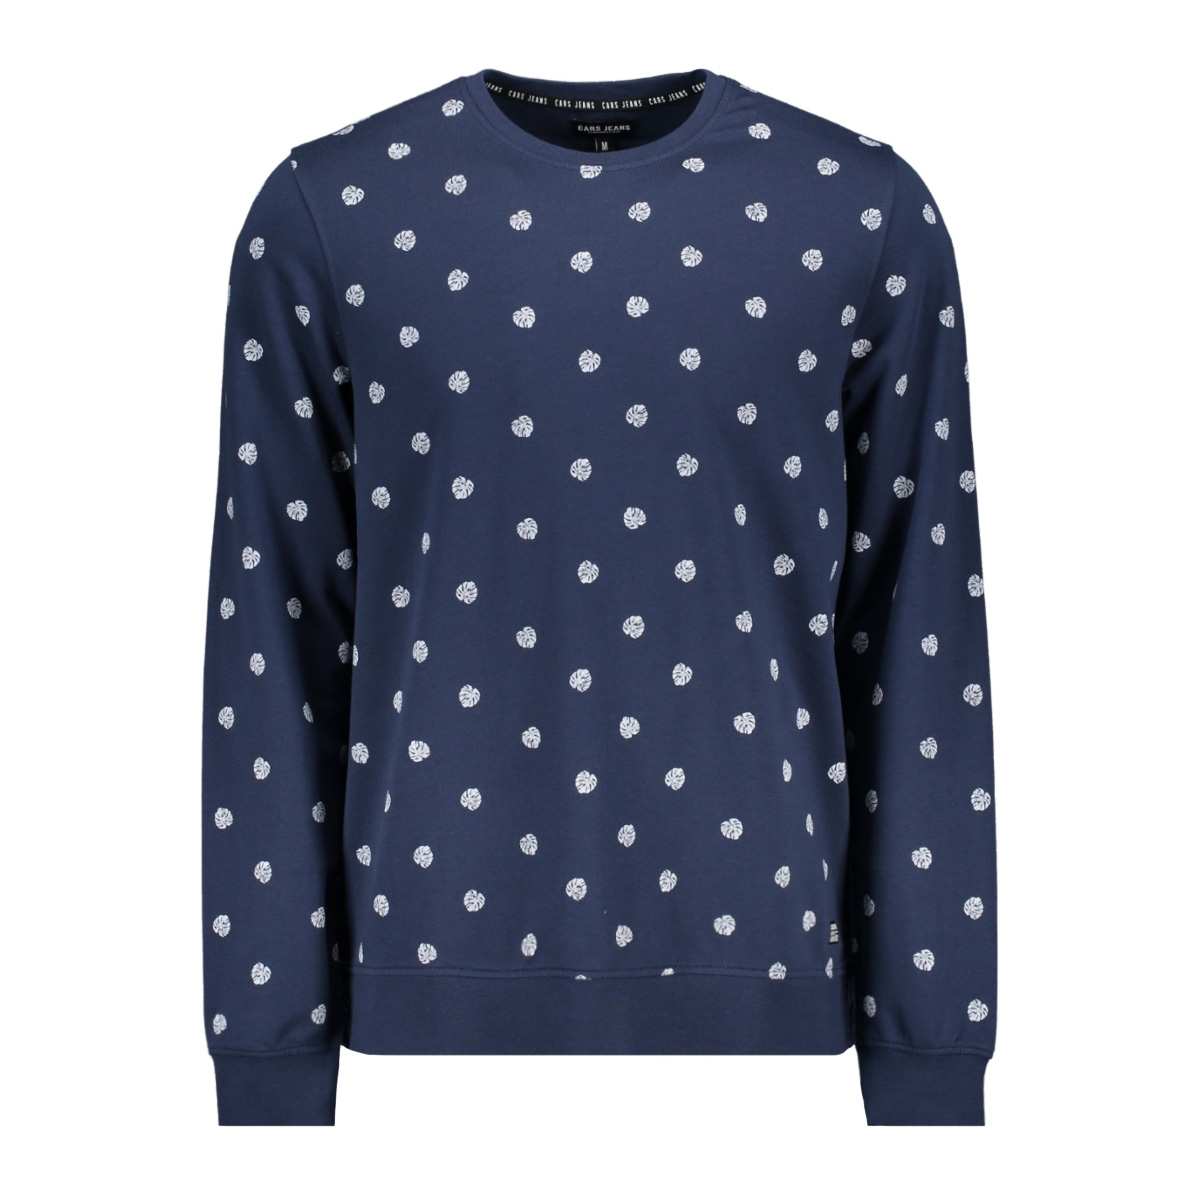 chris sw 40480 cars sweater 12 navy